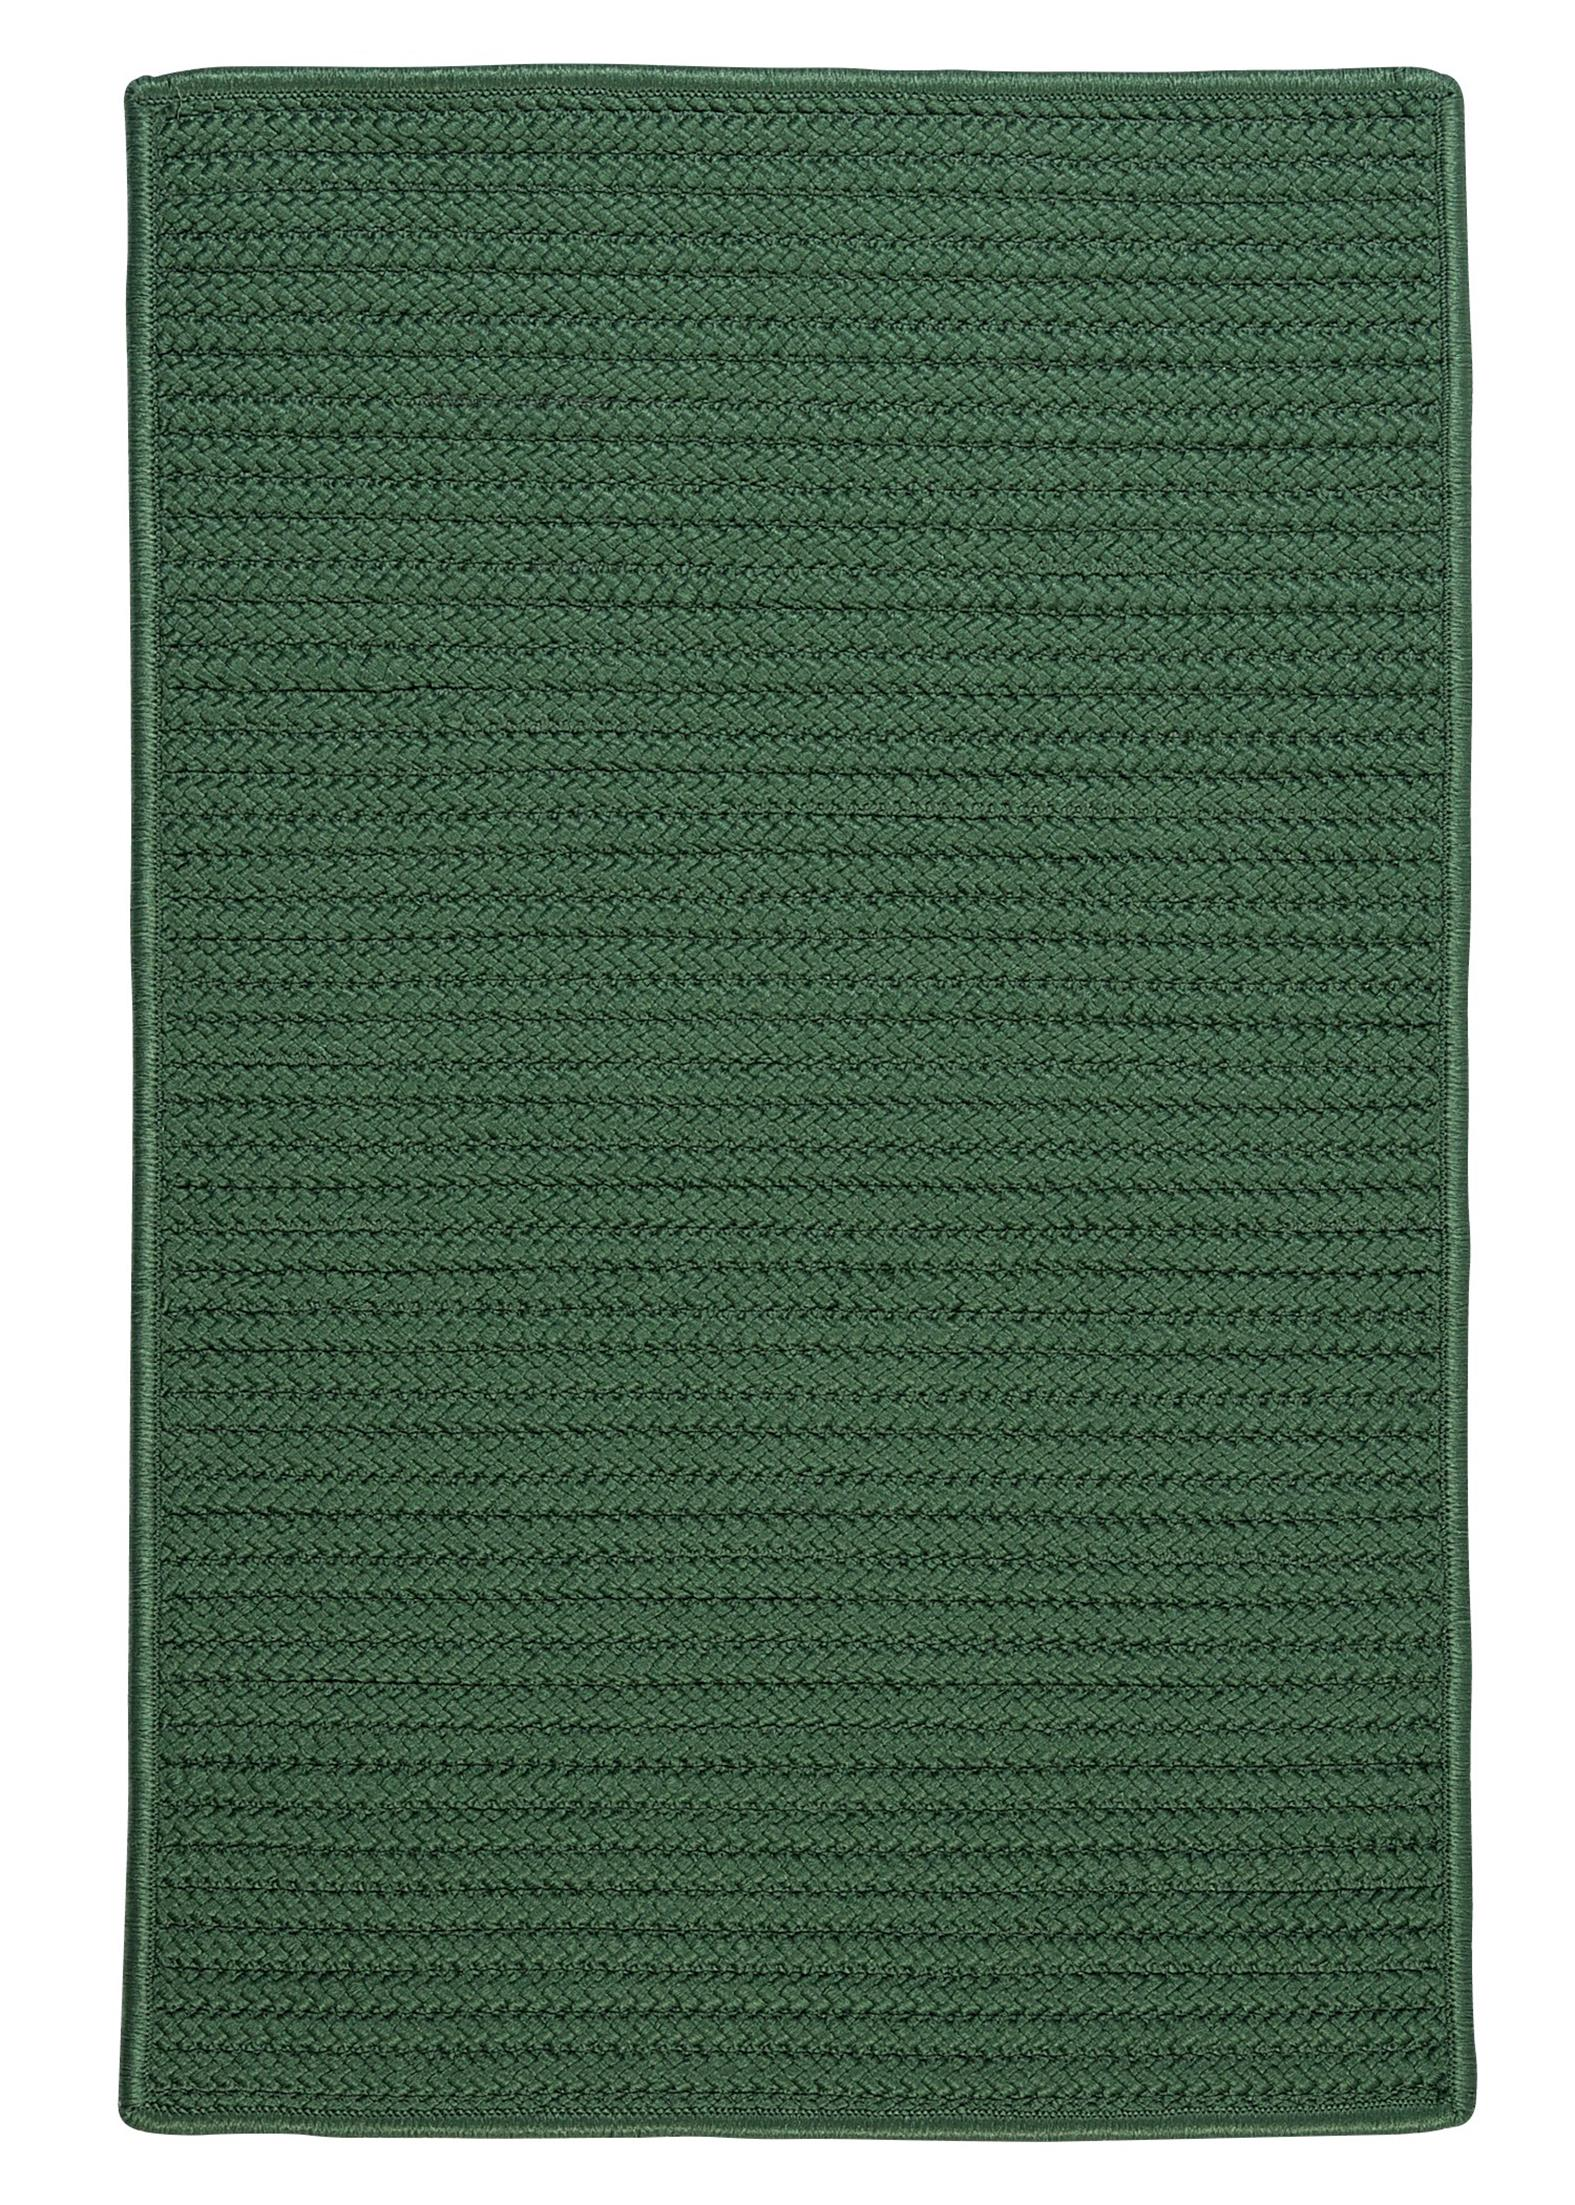 Colonial Mills Simply Home Solid H459 Myrtle Green Area Rug